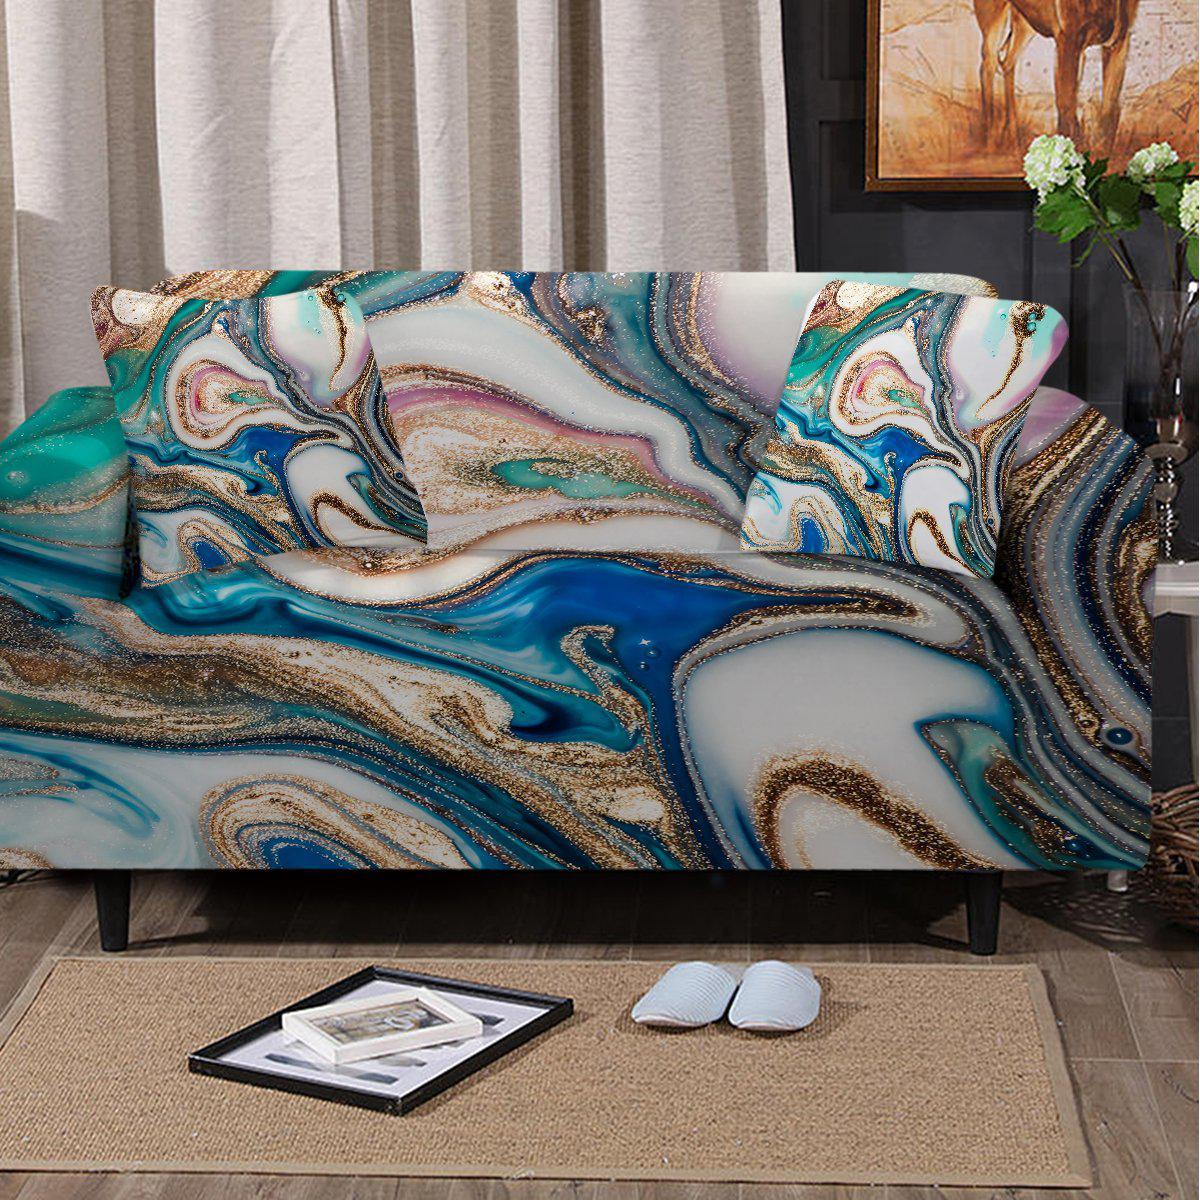 Sofa Slipcover-Copacabana Couch Cover-Coastal Passion